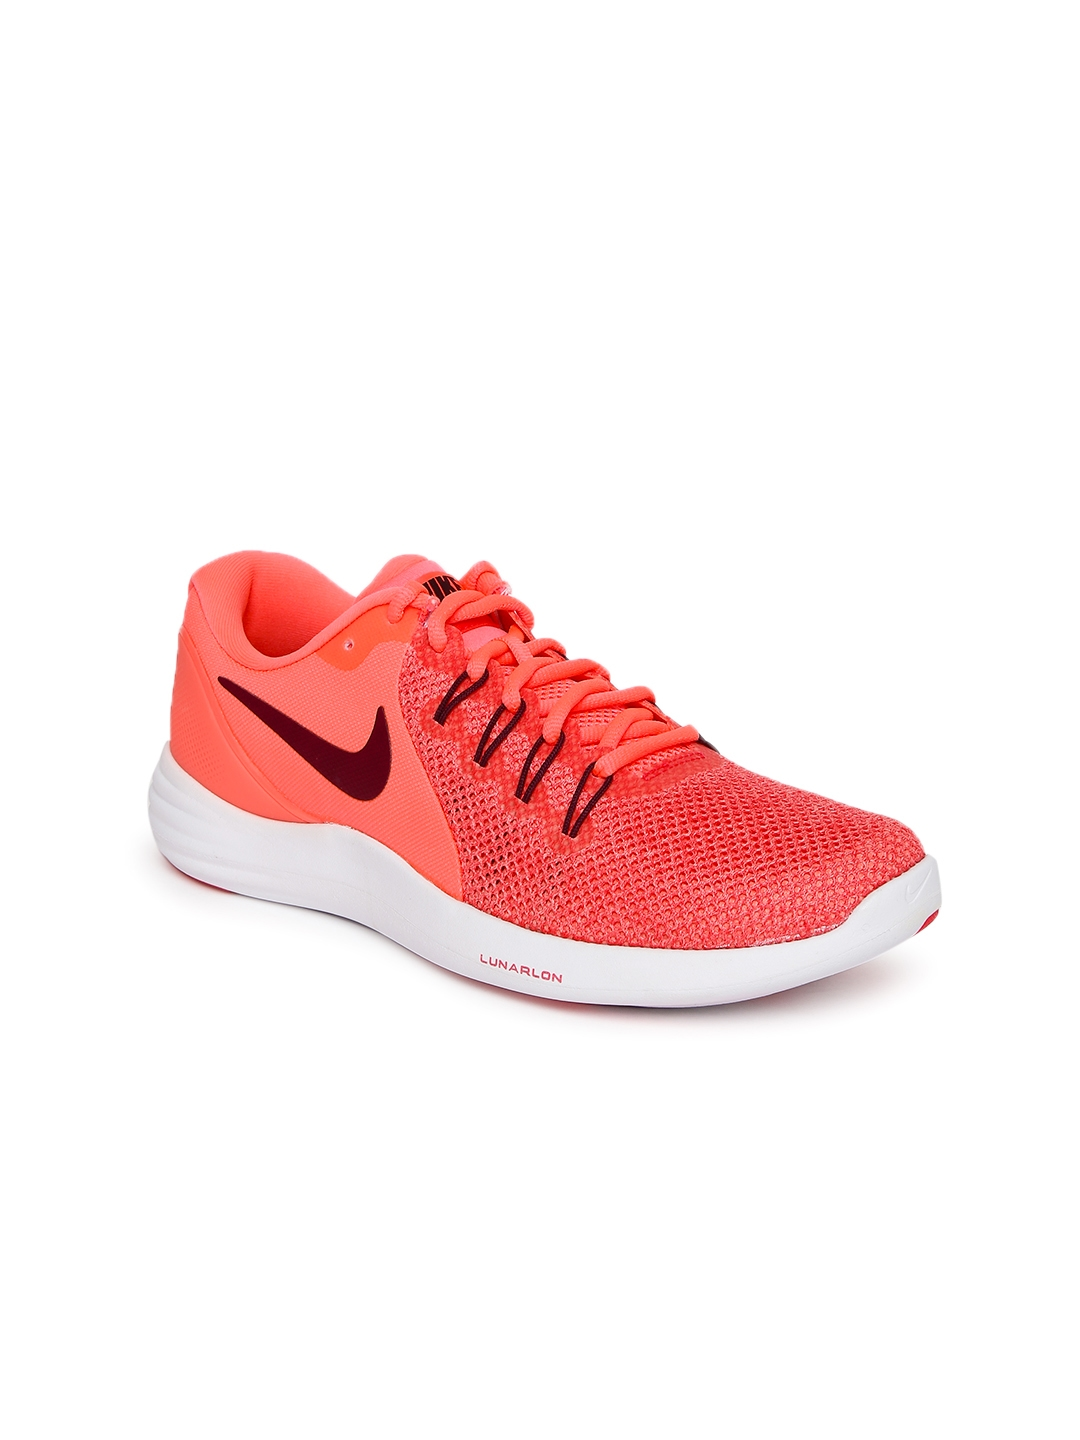 Shoes Women Sports Running Apparent Neon Nike Pink Lunar Buy faS8q05na